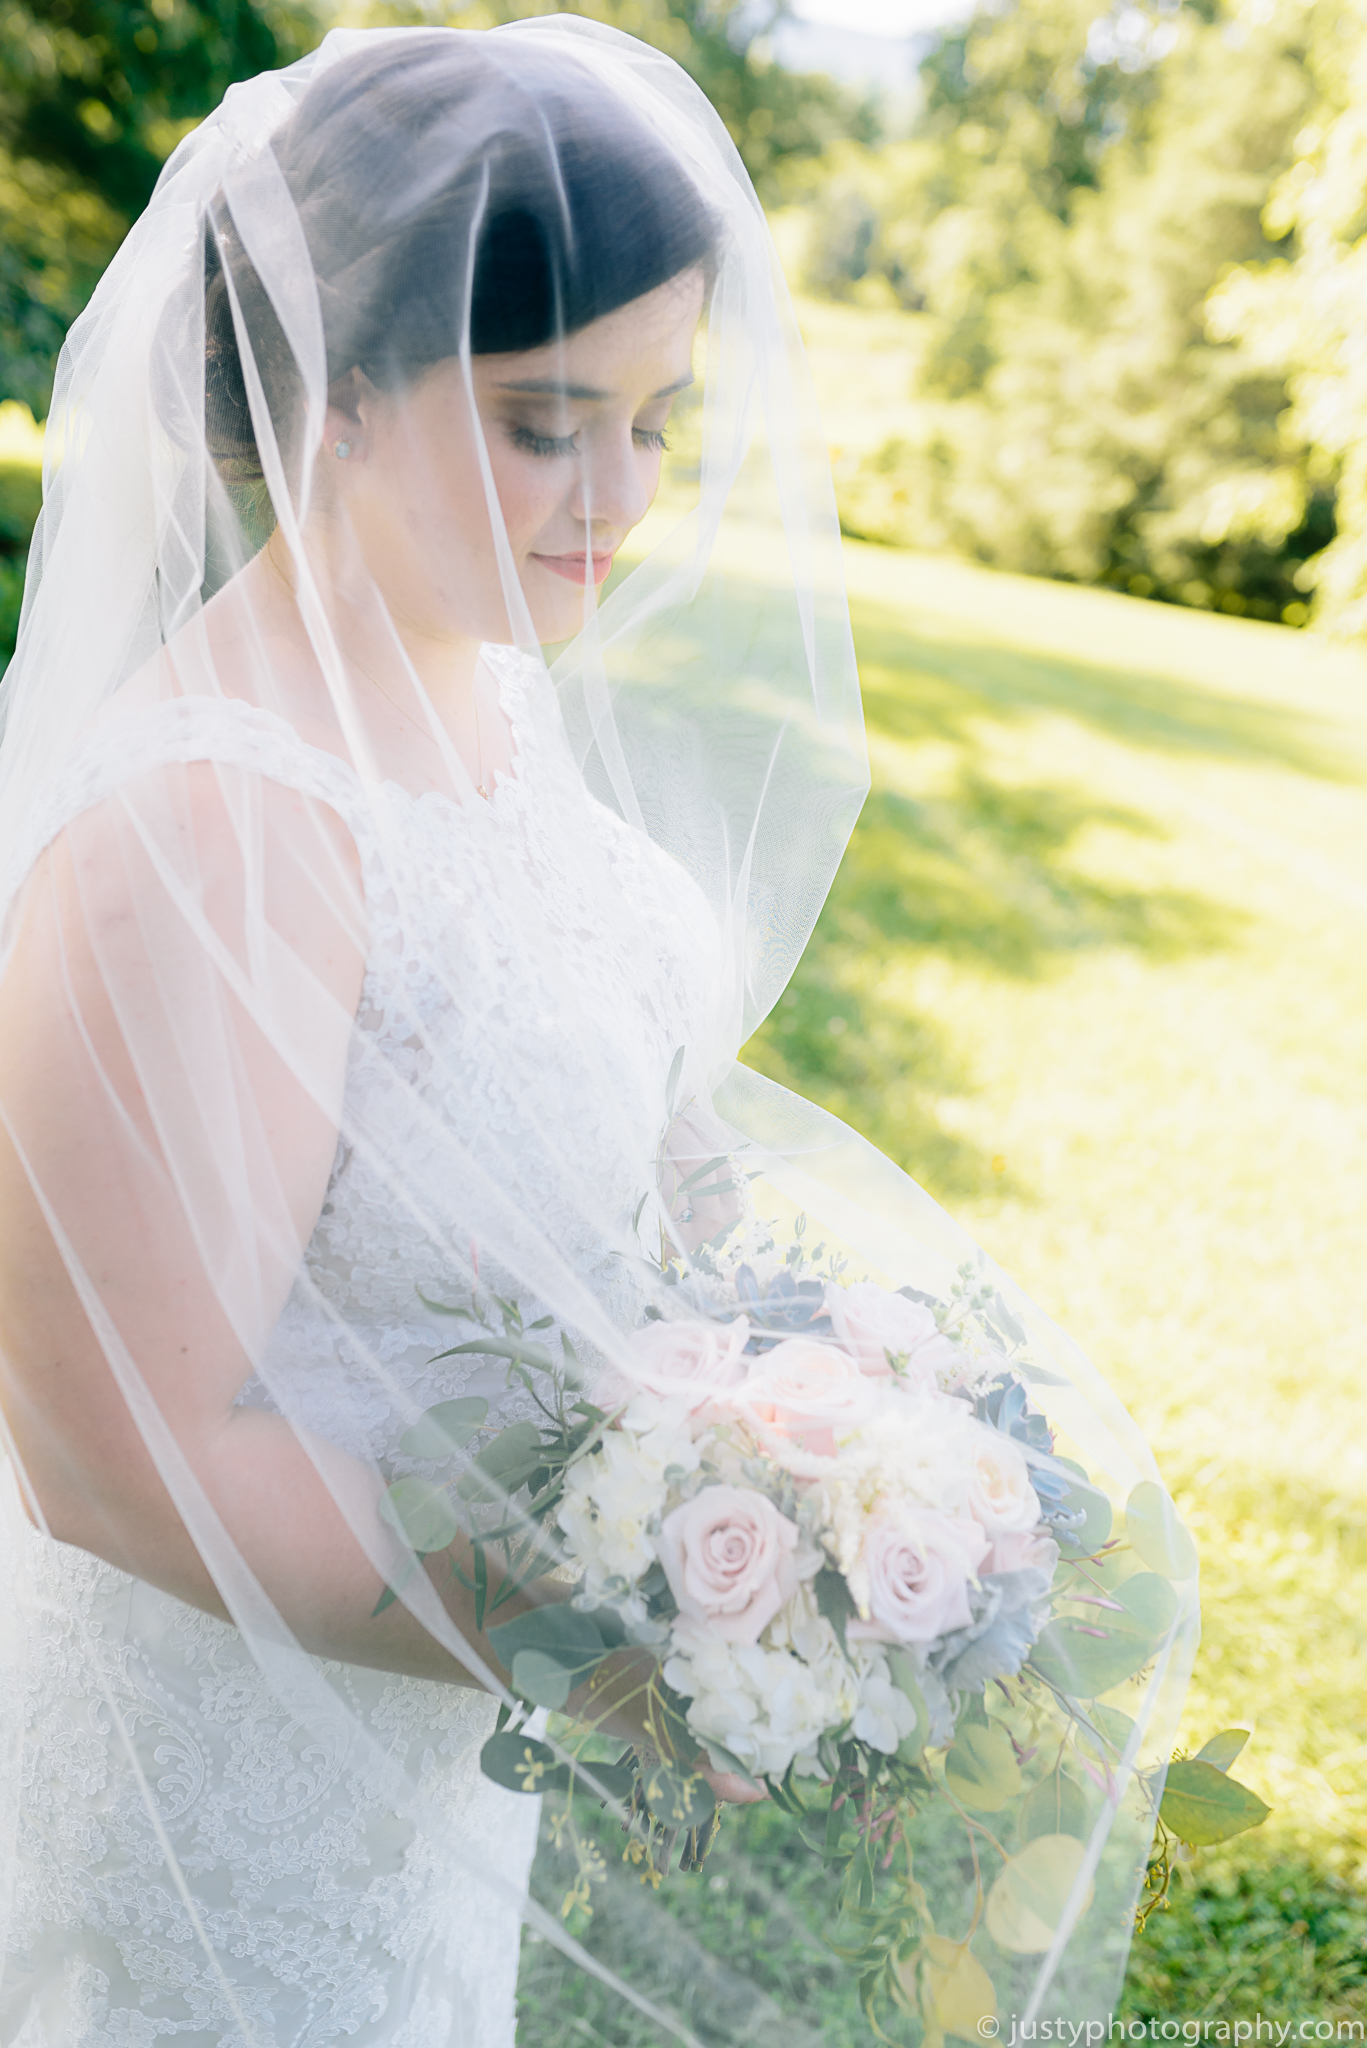 Silverbrook Farm Wedding Photos - Washington DC Wedding Photographer - Bride portraits